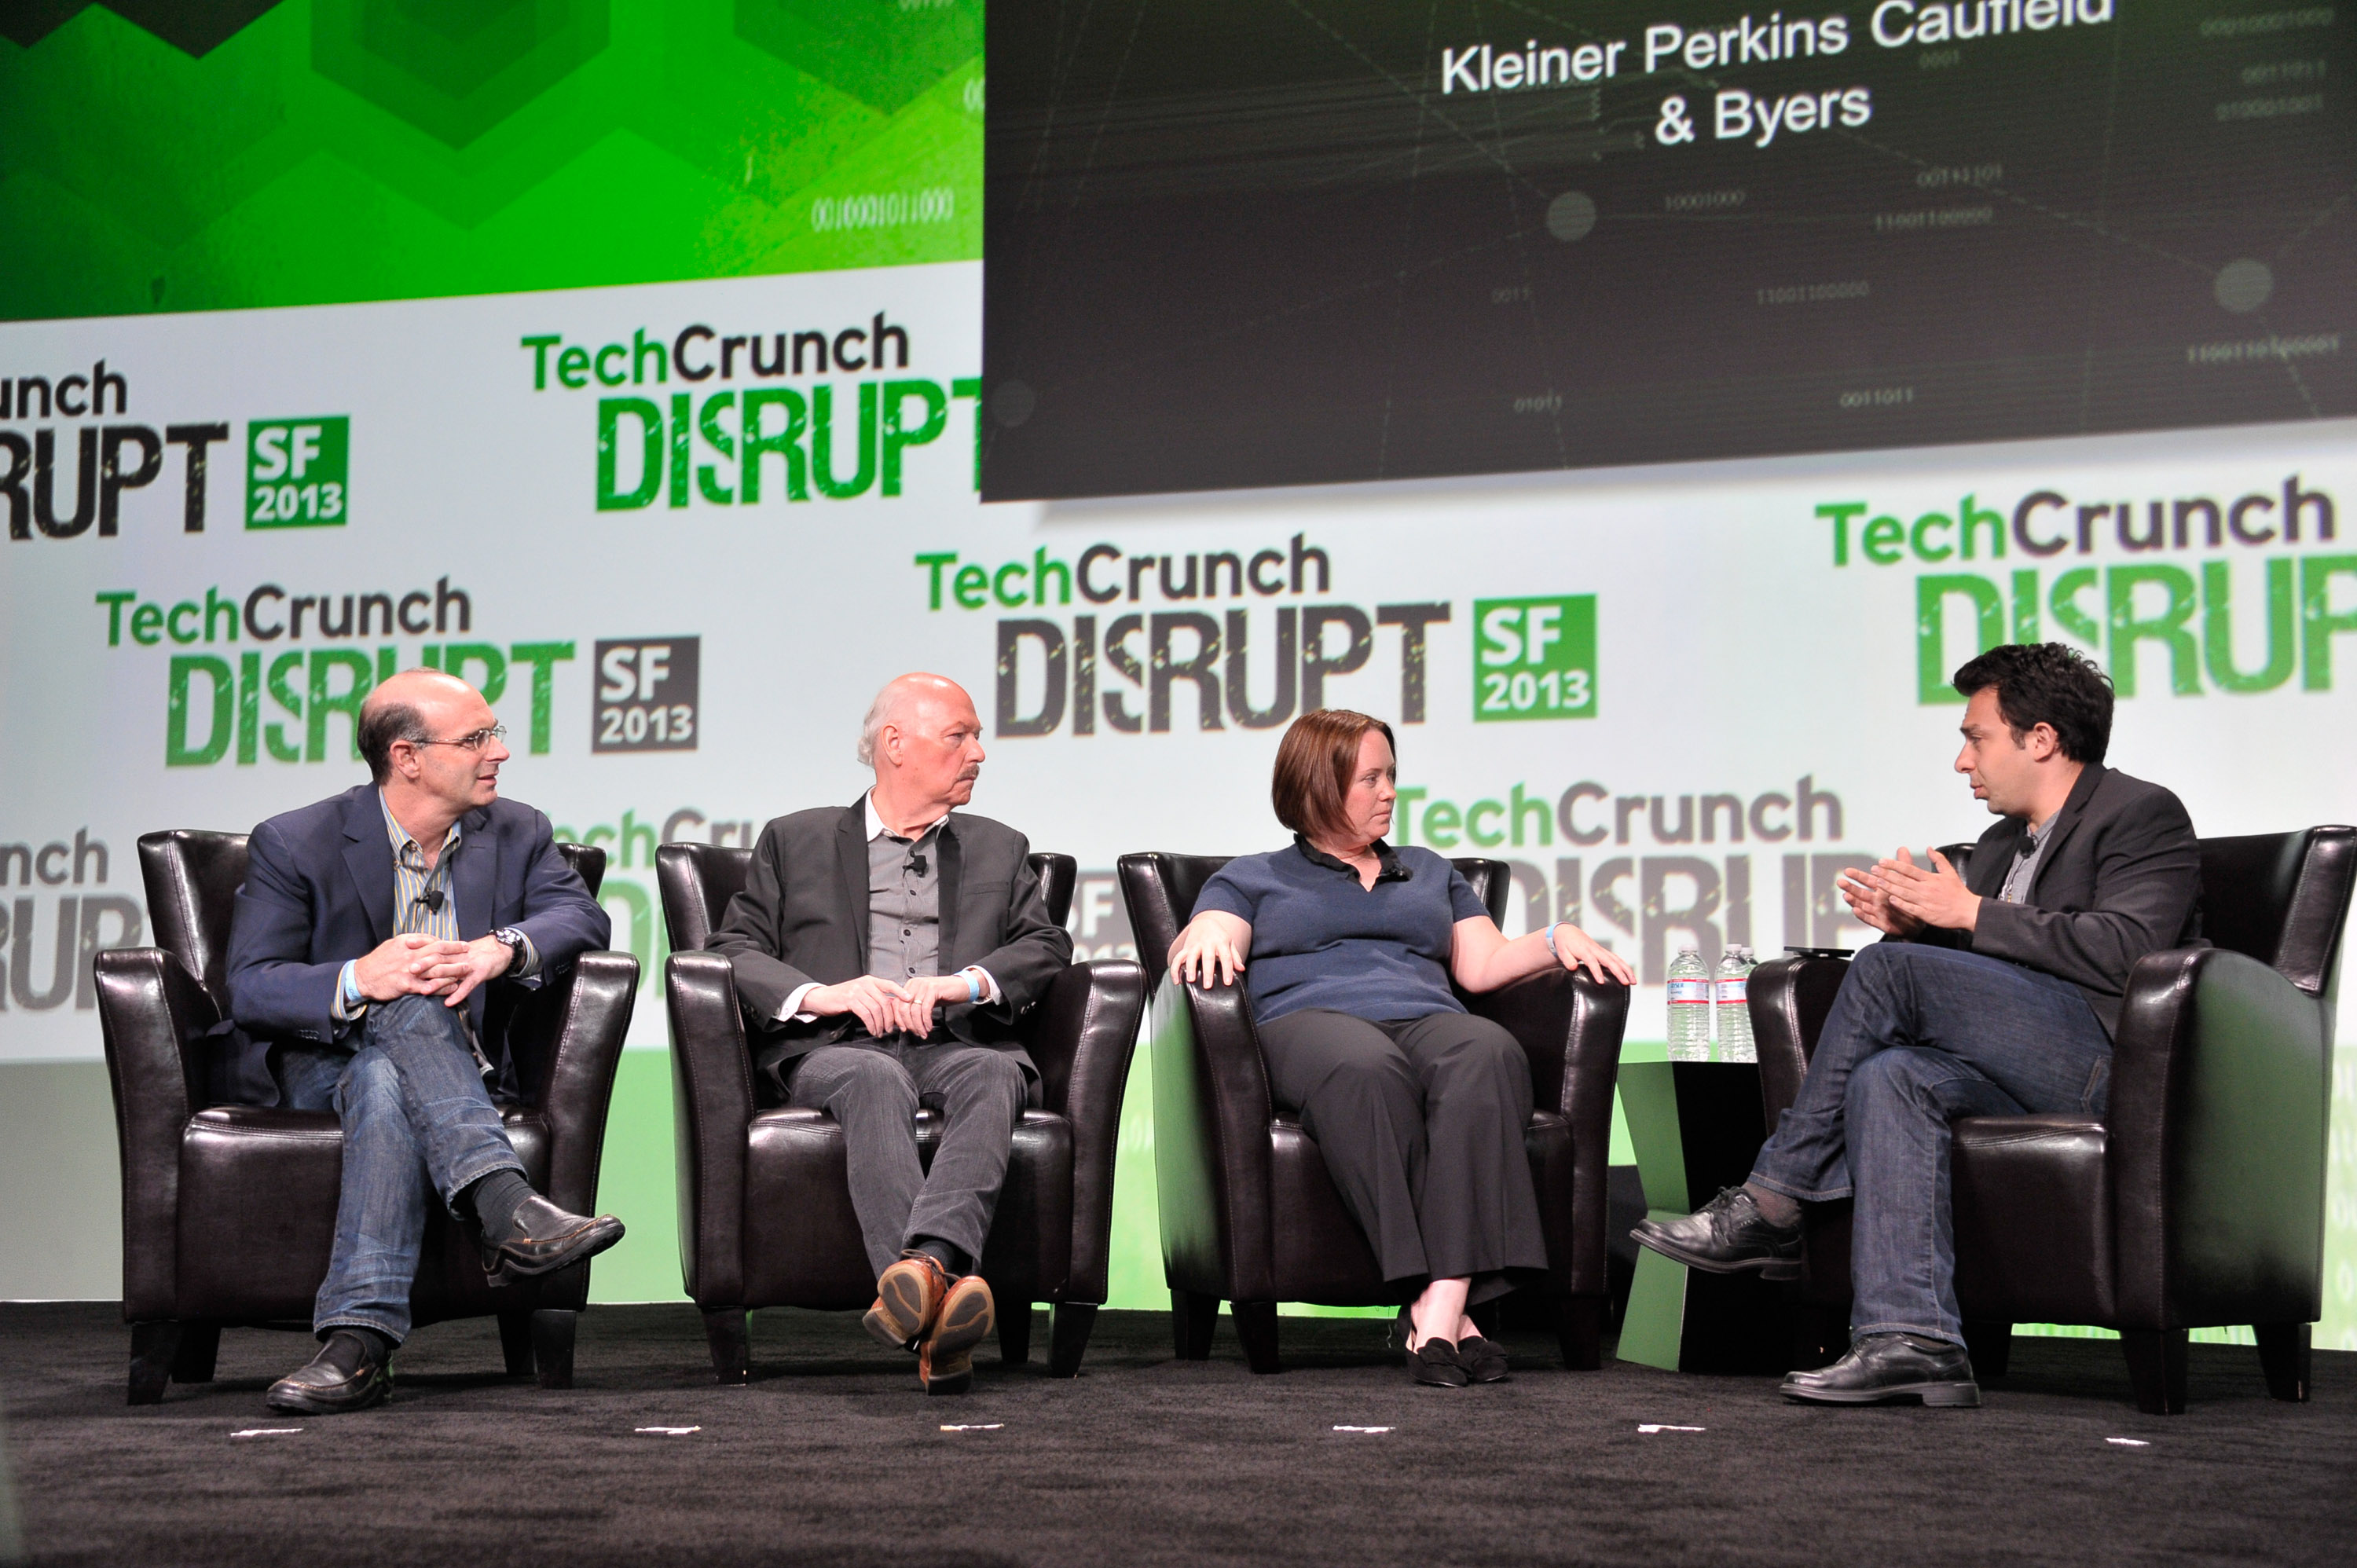 KPCB's Ted Schlein on stage at TechCrunch Disrupt SF in 2013 discussing cybersecurity technologies.